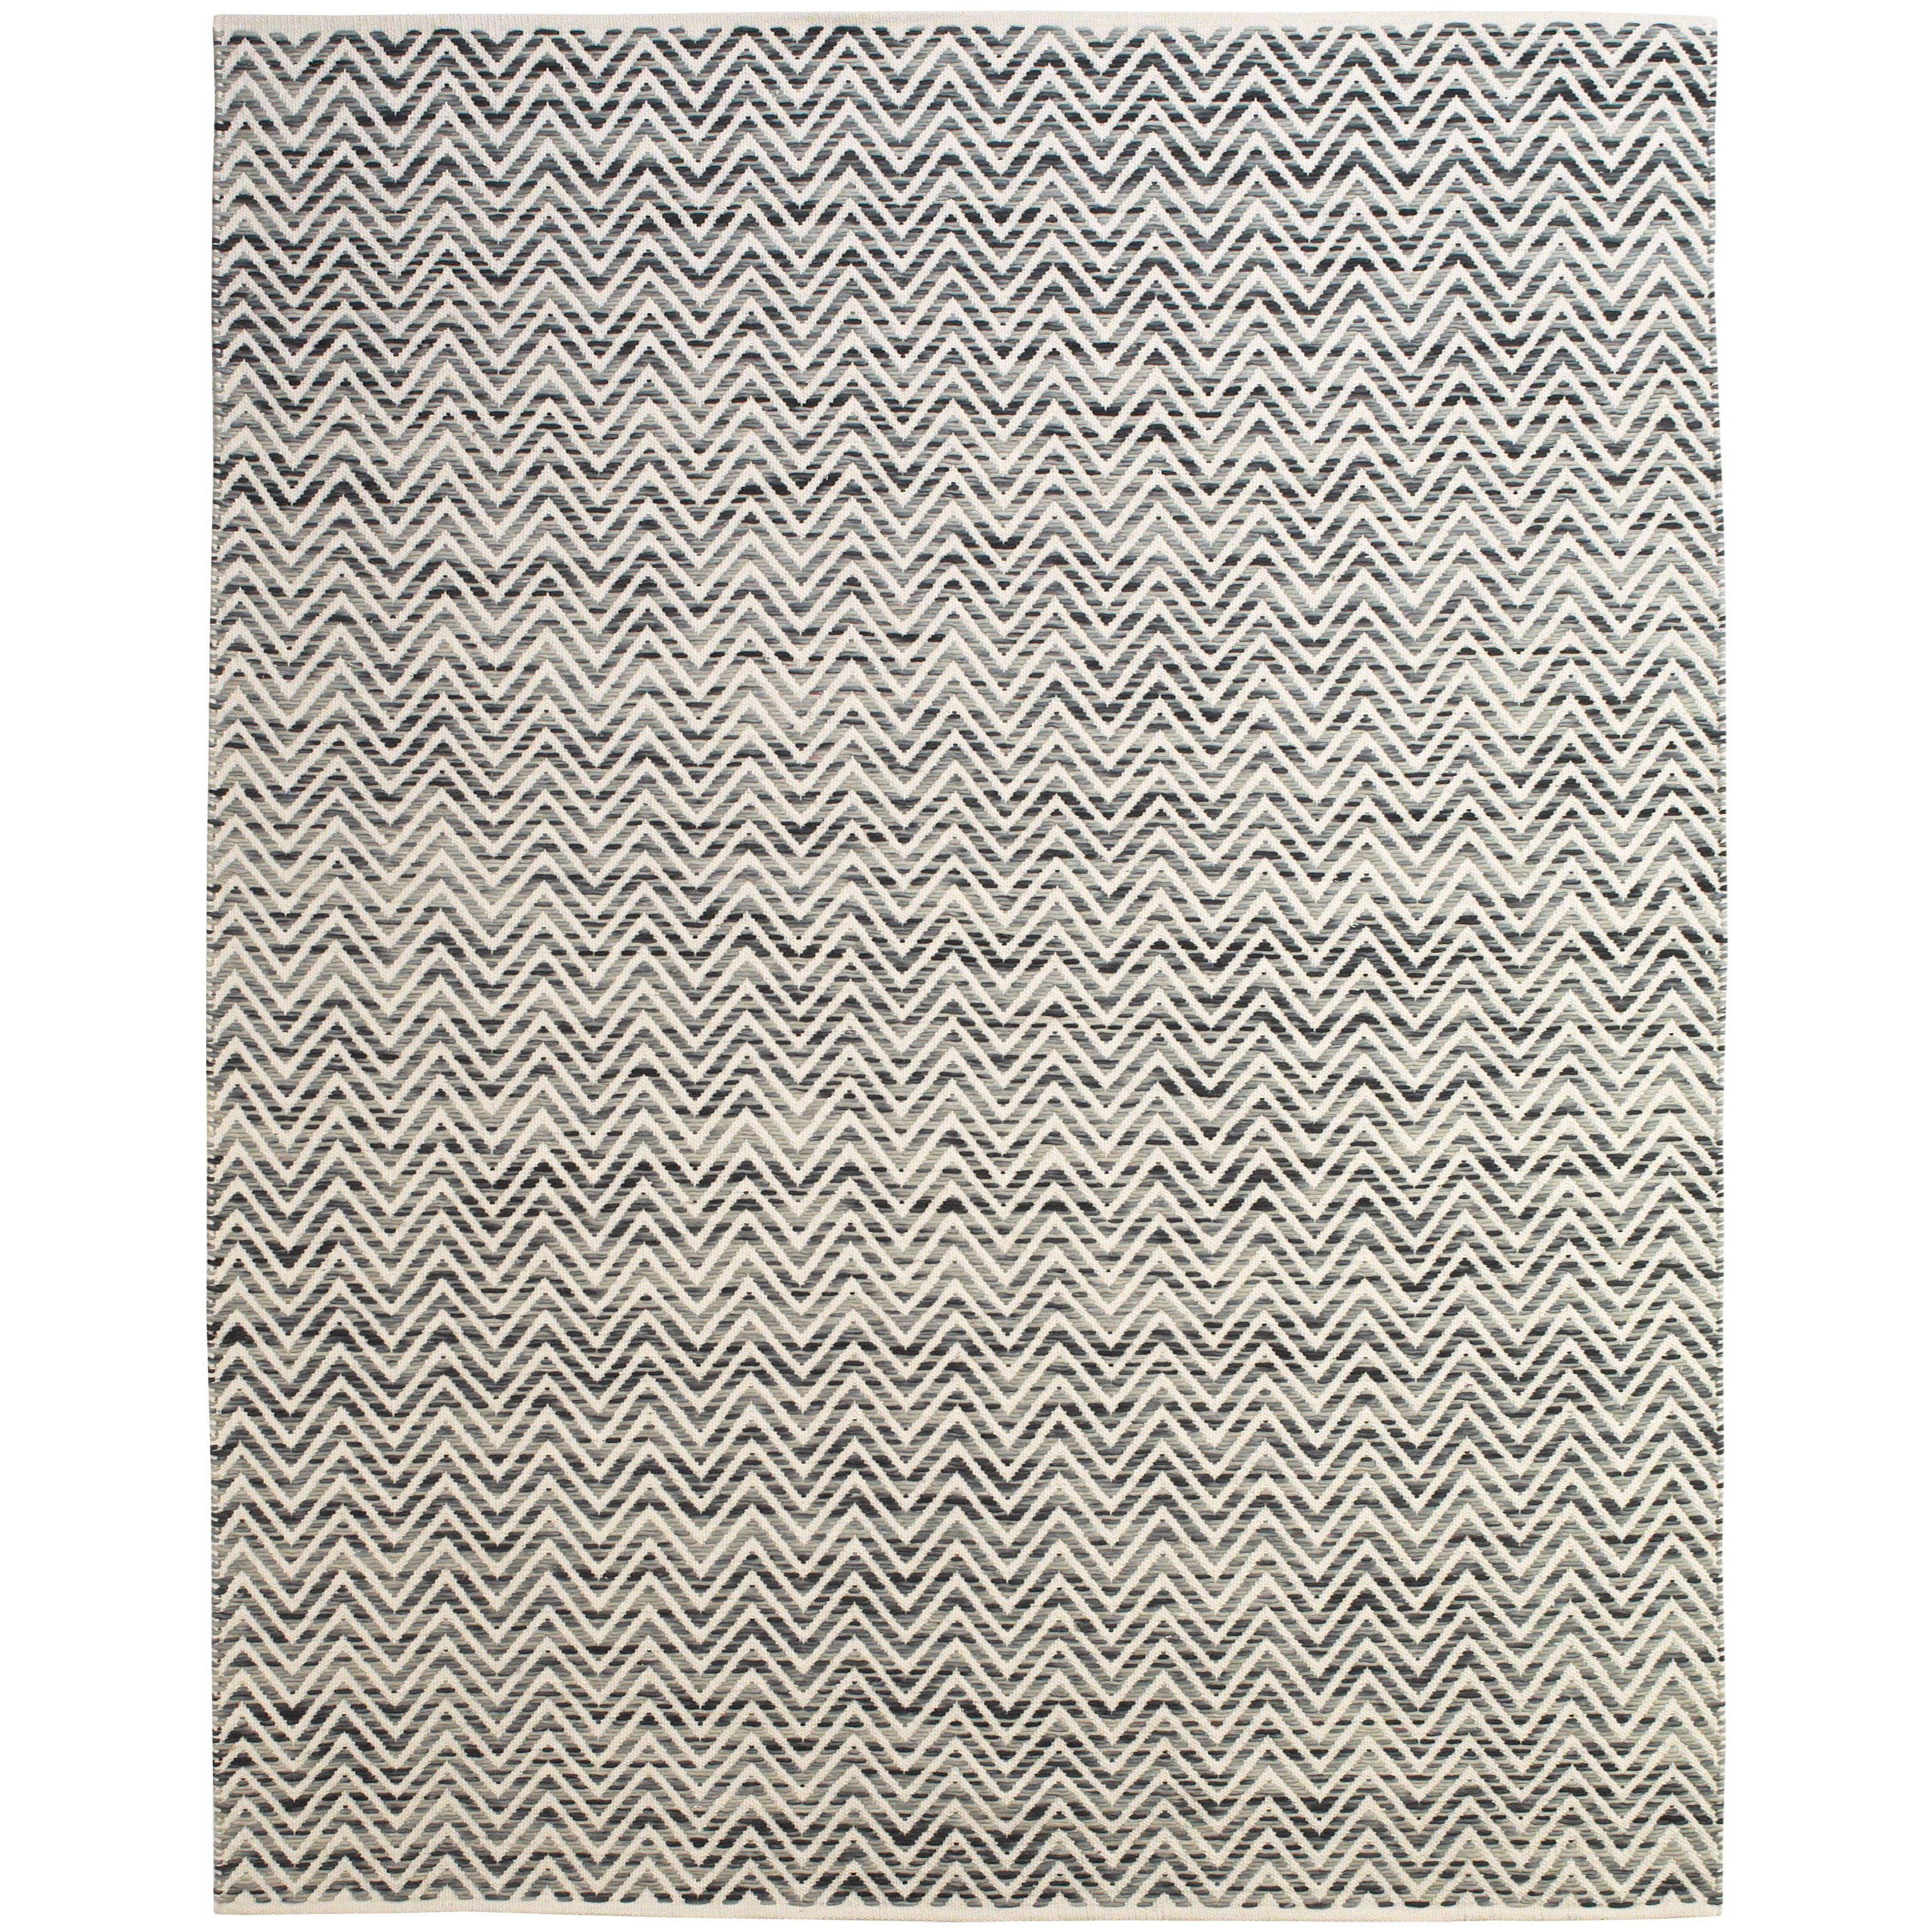 Mojave Dark Blue/Gray 8' X 11' Area Rug by Feizy Rugs at Sprintz Furniture